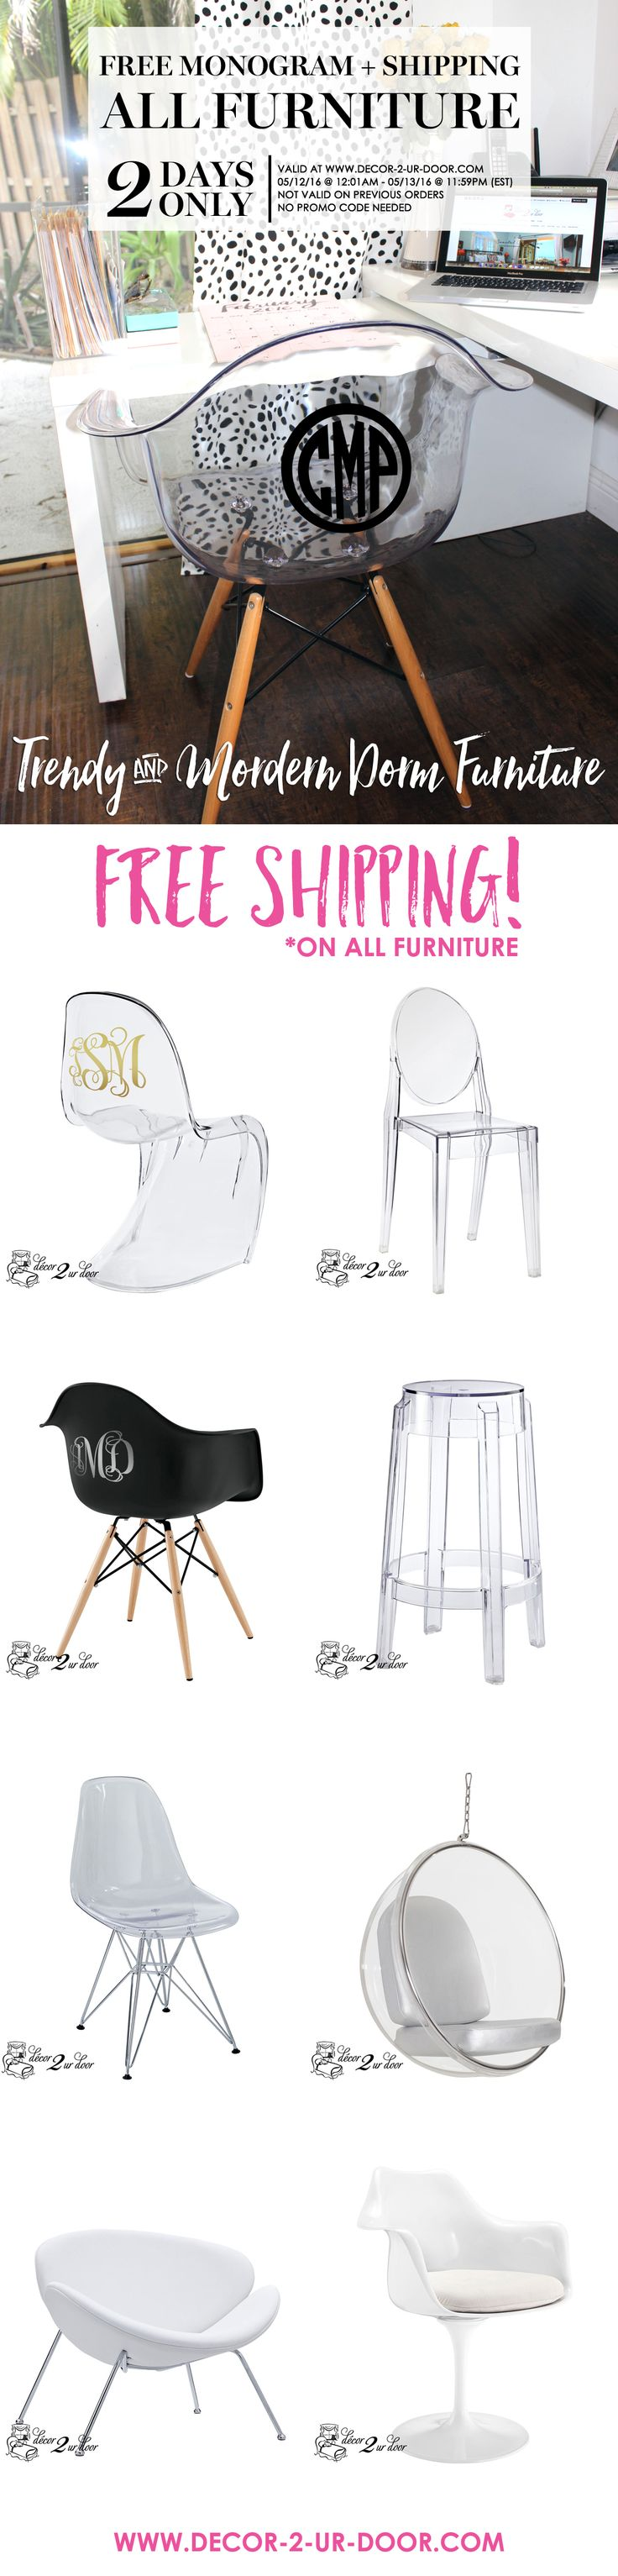 Don't miss out on this promo! FREE MONOGRAM and FREE SHIPPING to make your dorm..awesome!